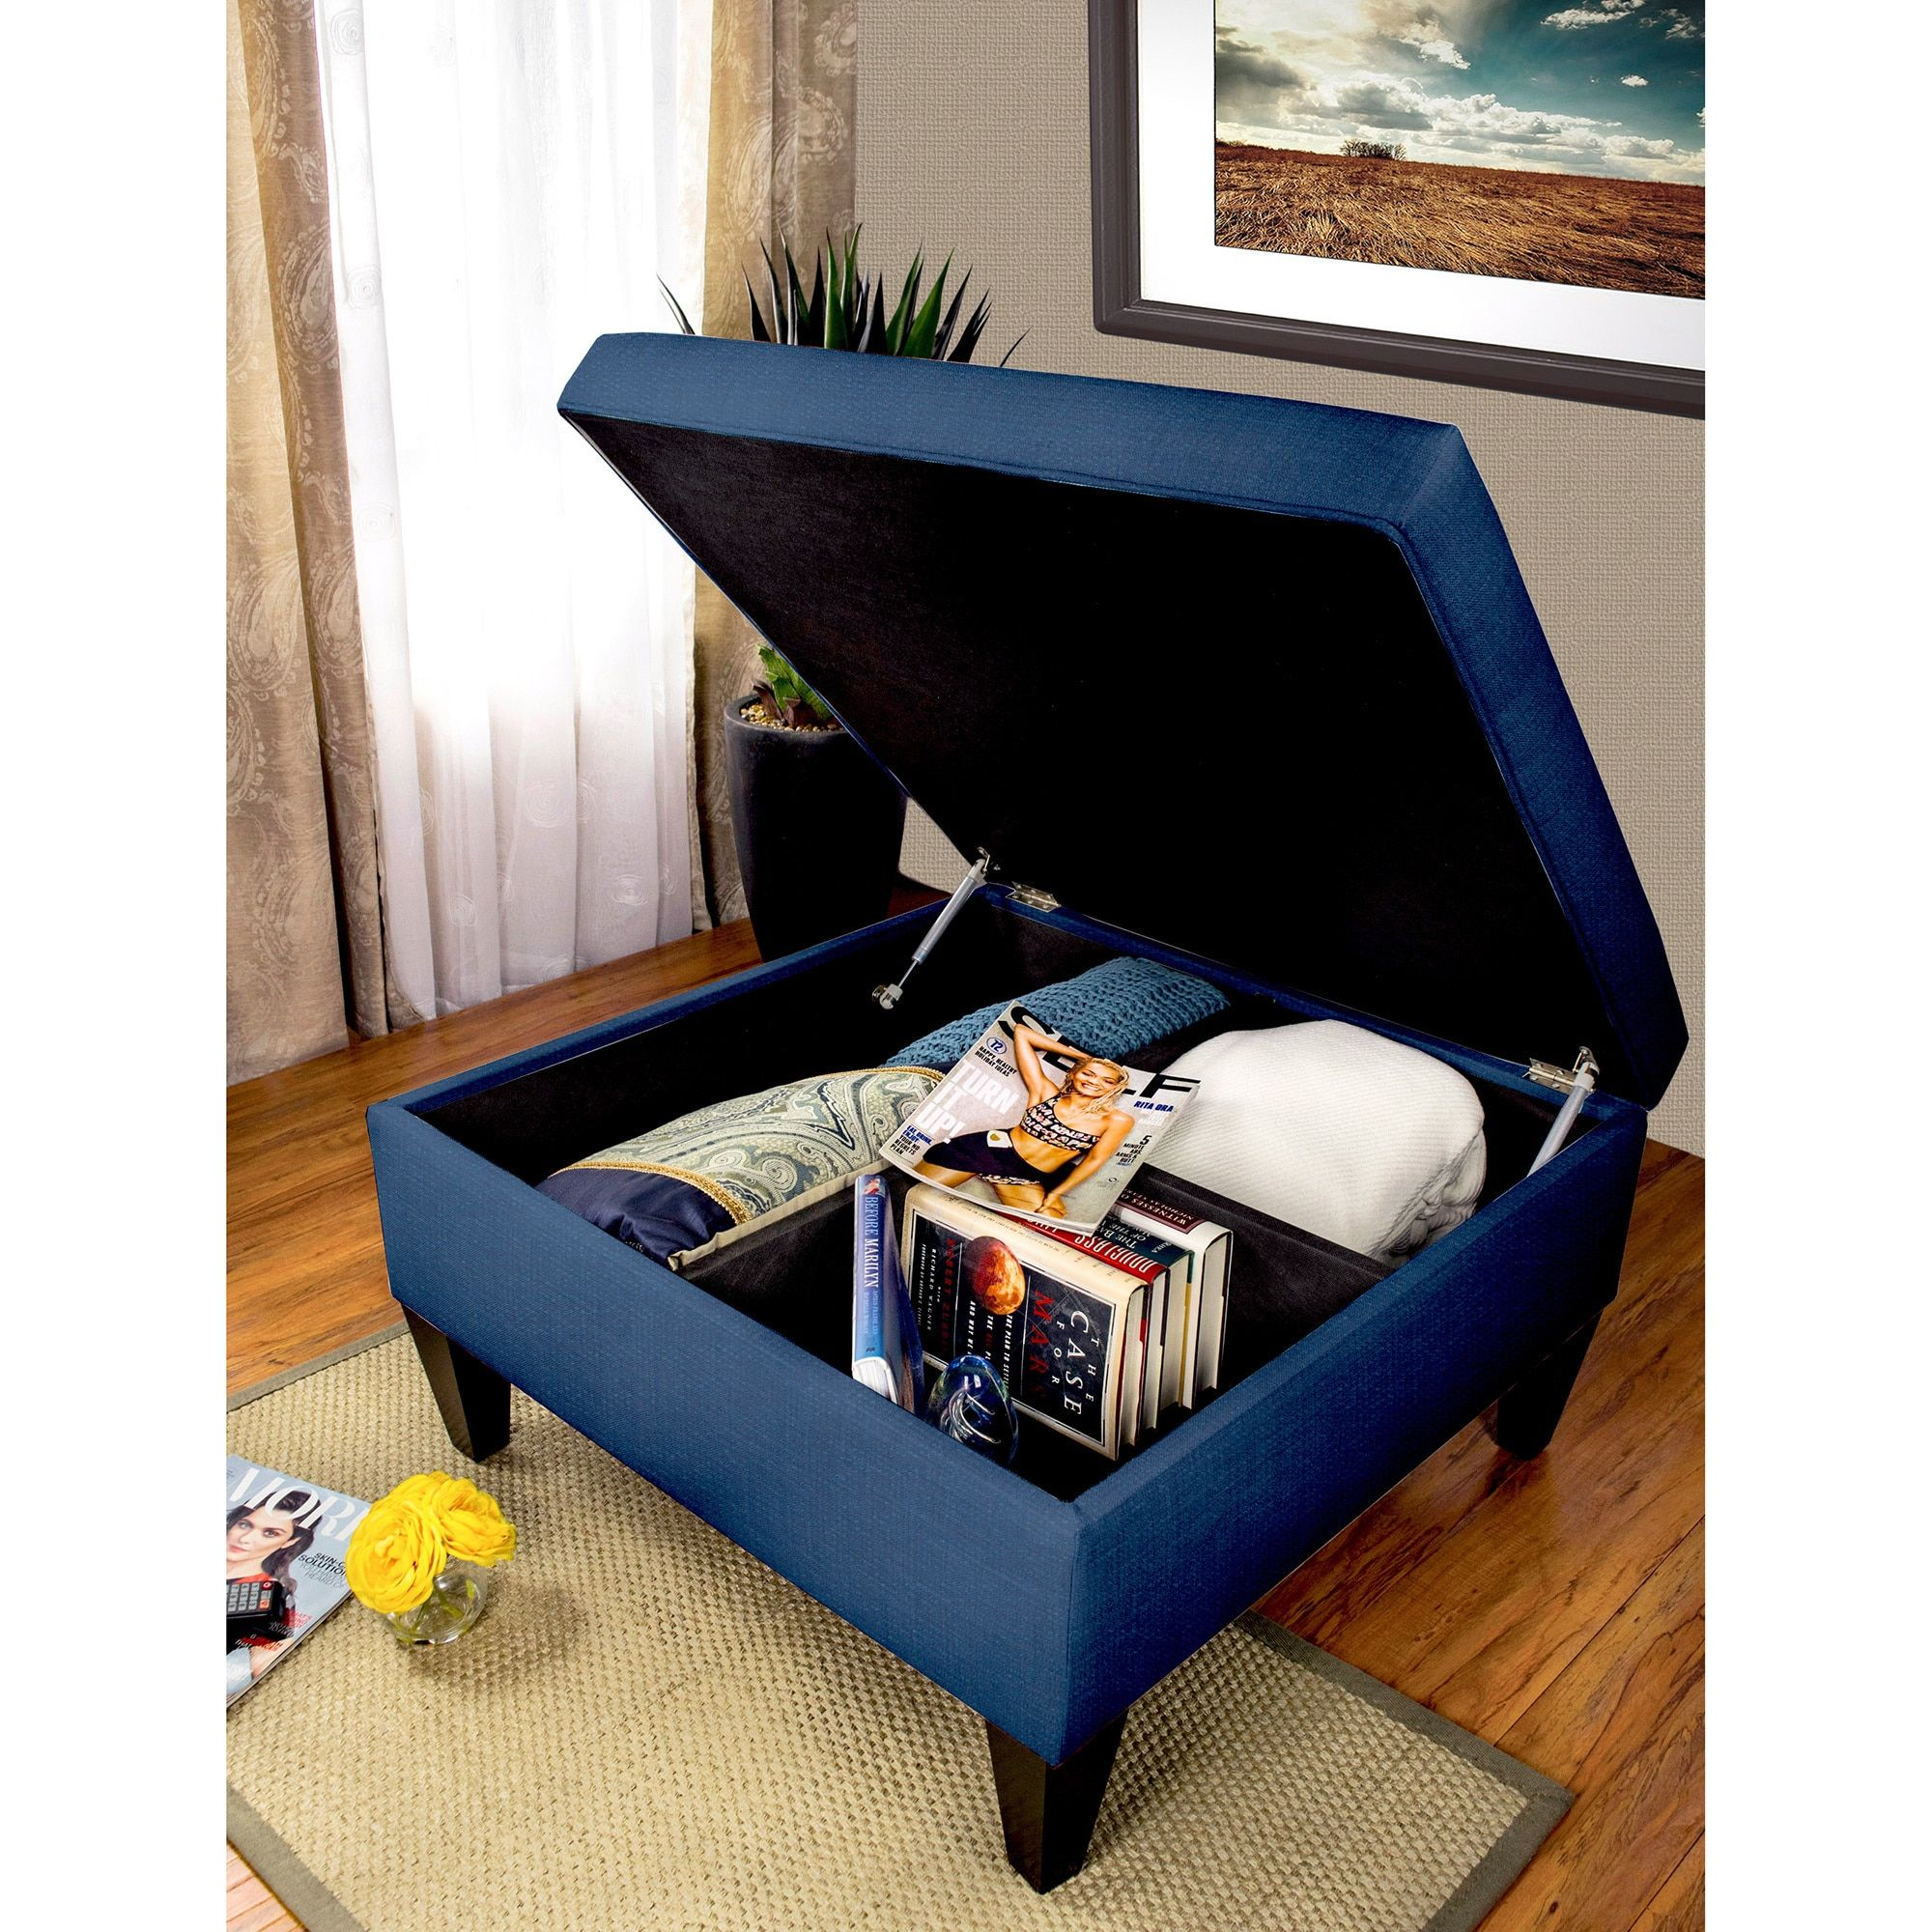 MJL Furniture Solid-colored Fabric Organizational Ottoman ...